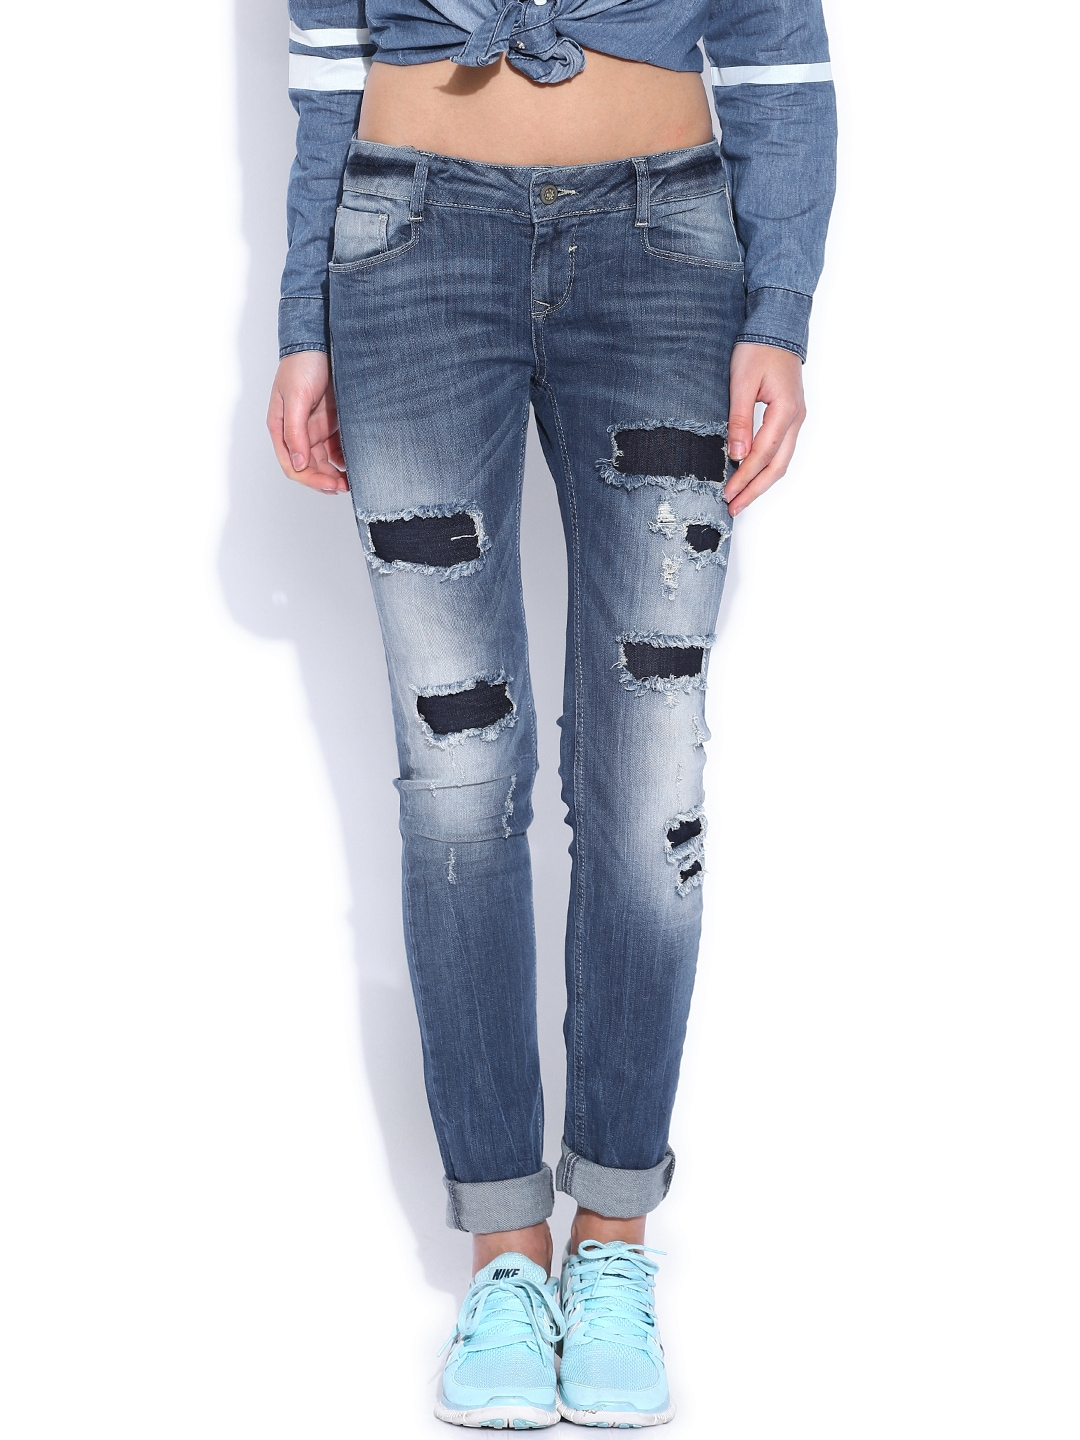 myntra vero moda blue slim fit low rise jeans 810727 buy myntra vero moda jeans at best price. Black Bedroom Furniture Sets. Home Design Ideas